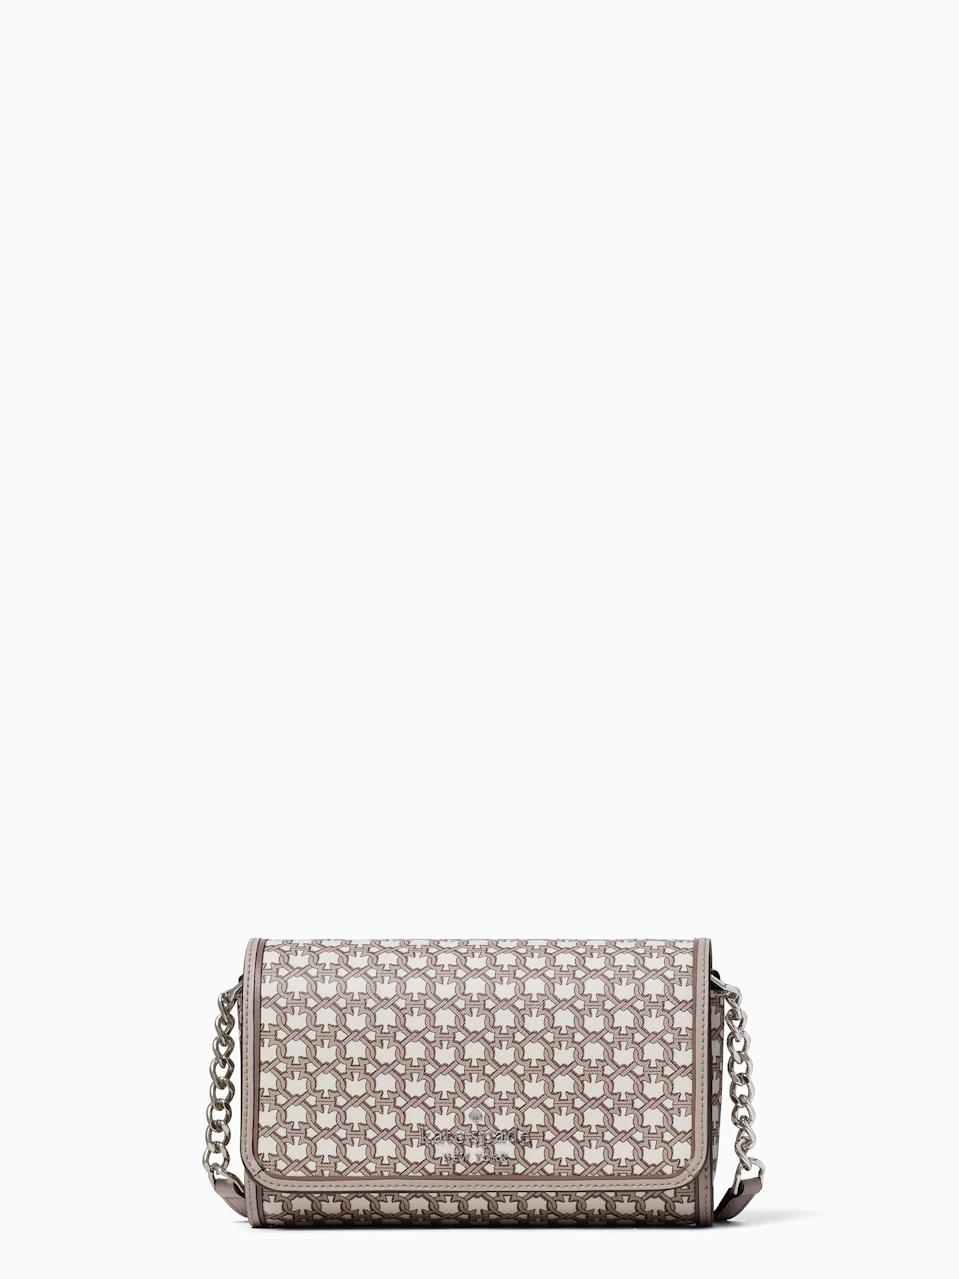 Spade Link Small Flap Crossbody - $69 (originally $239)